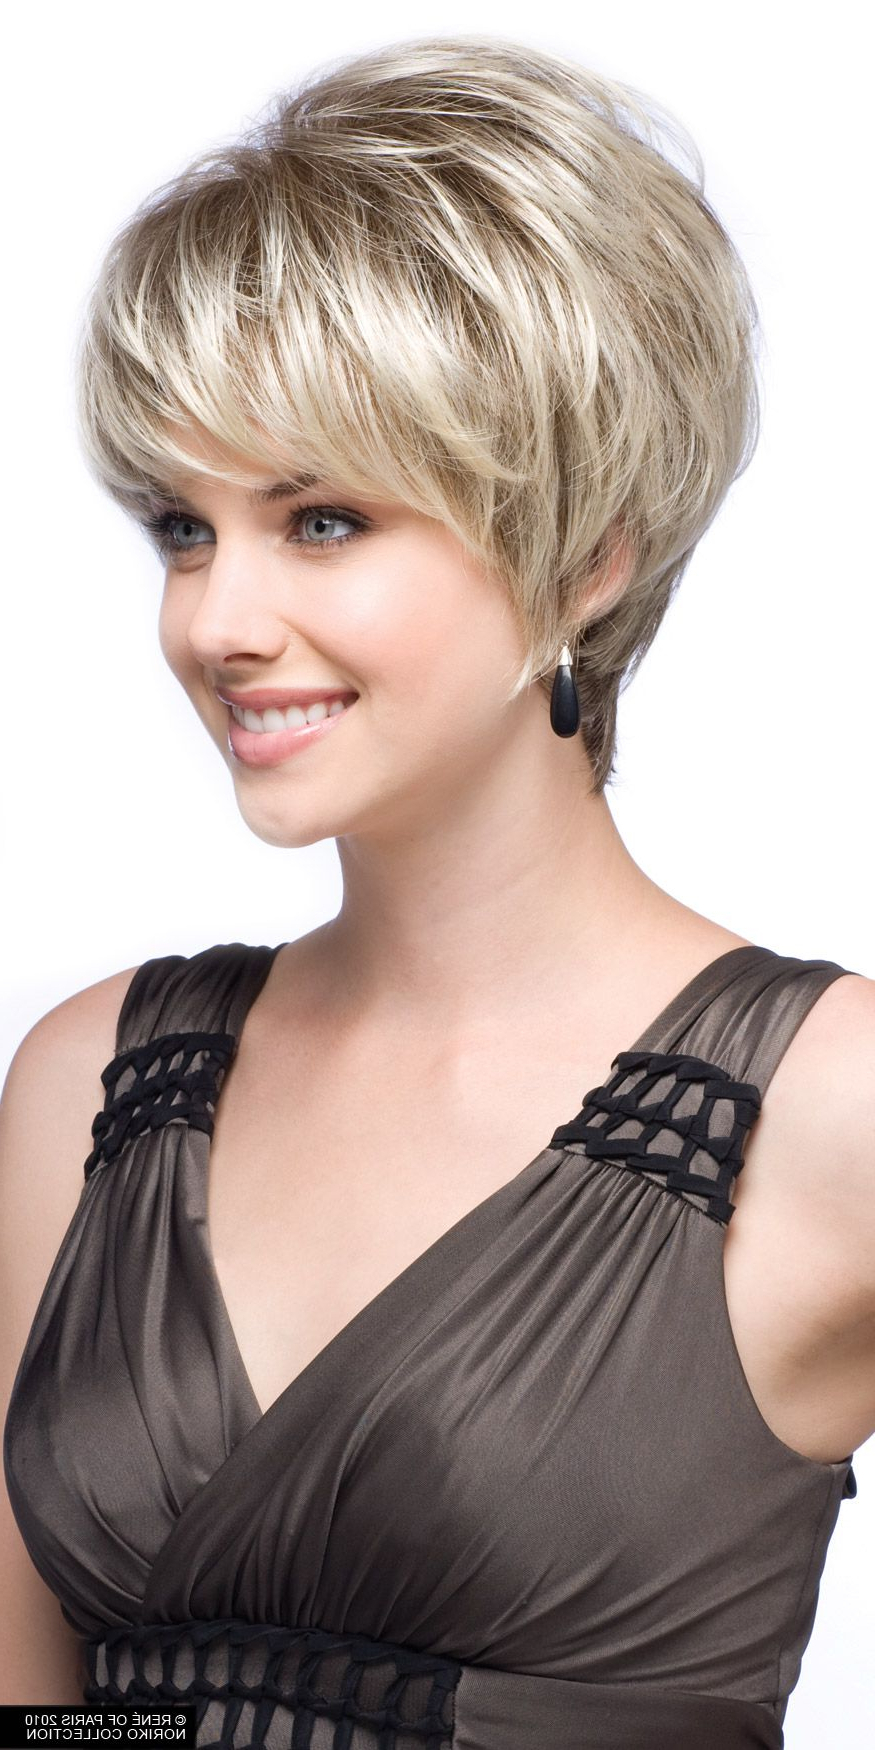 Pinrascal On Smiles In 2018 | Pinterest | Short Hair Styles With Wedge Short Haircuts (View 13 of 25)